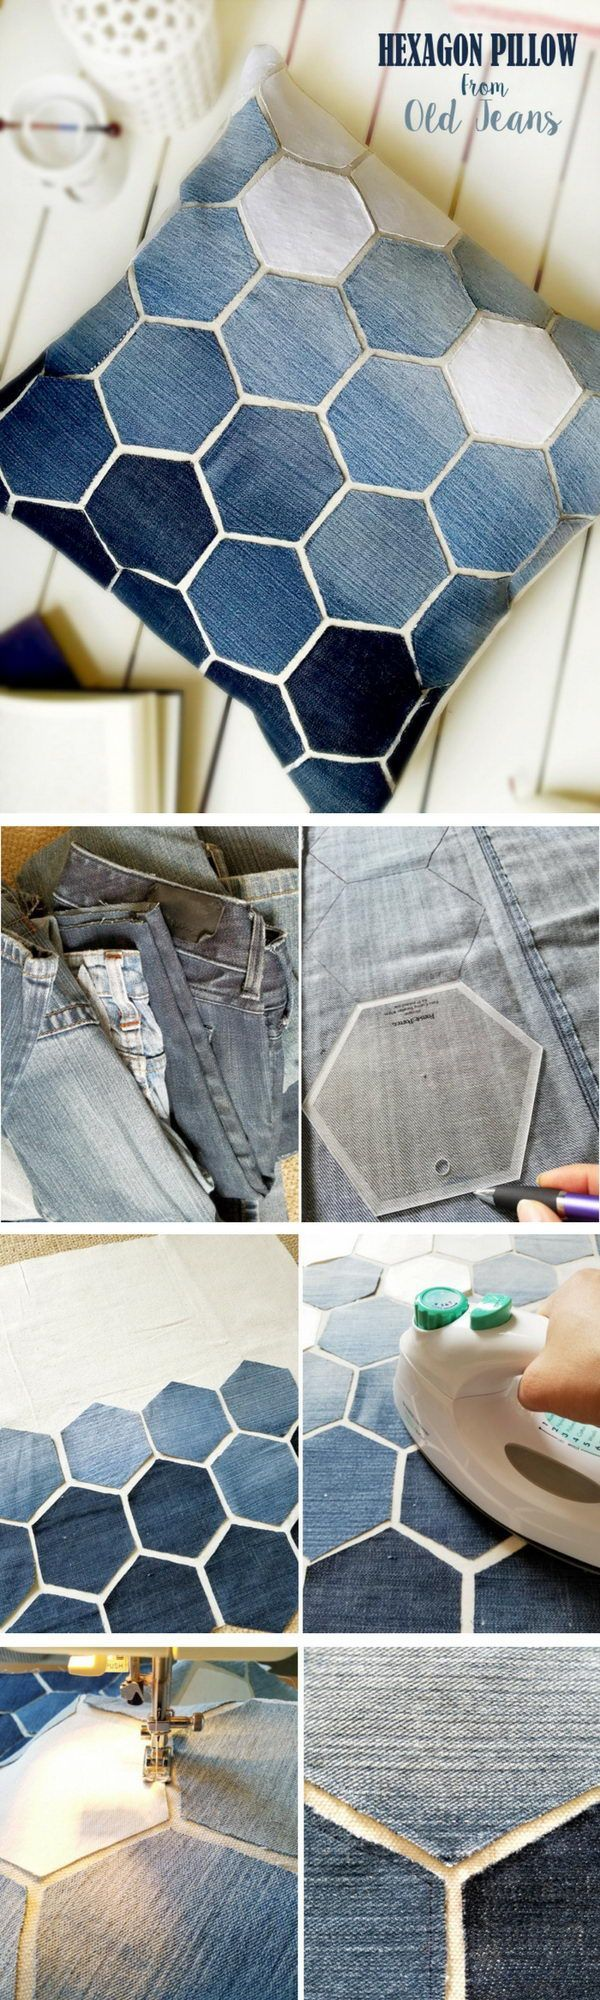 Jean Hexagon Pillow.